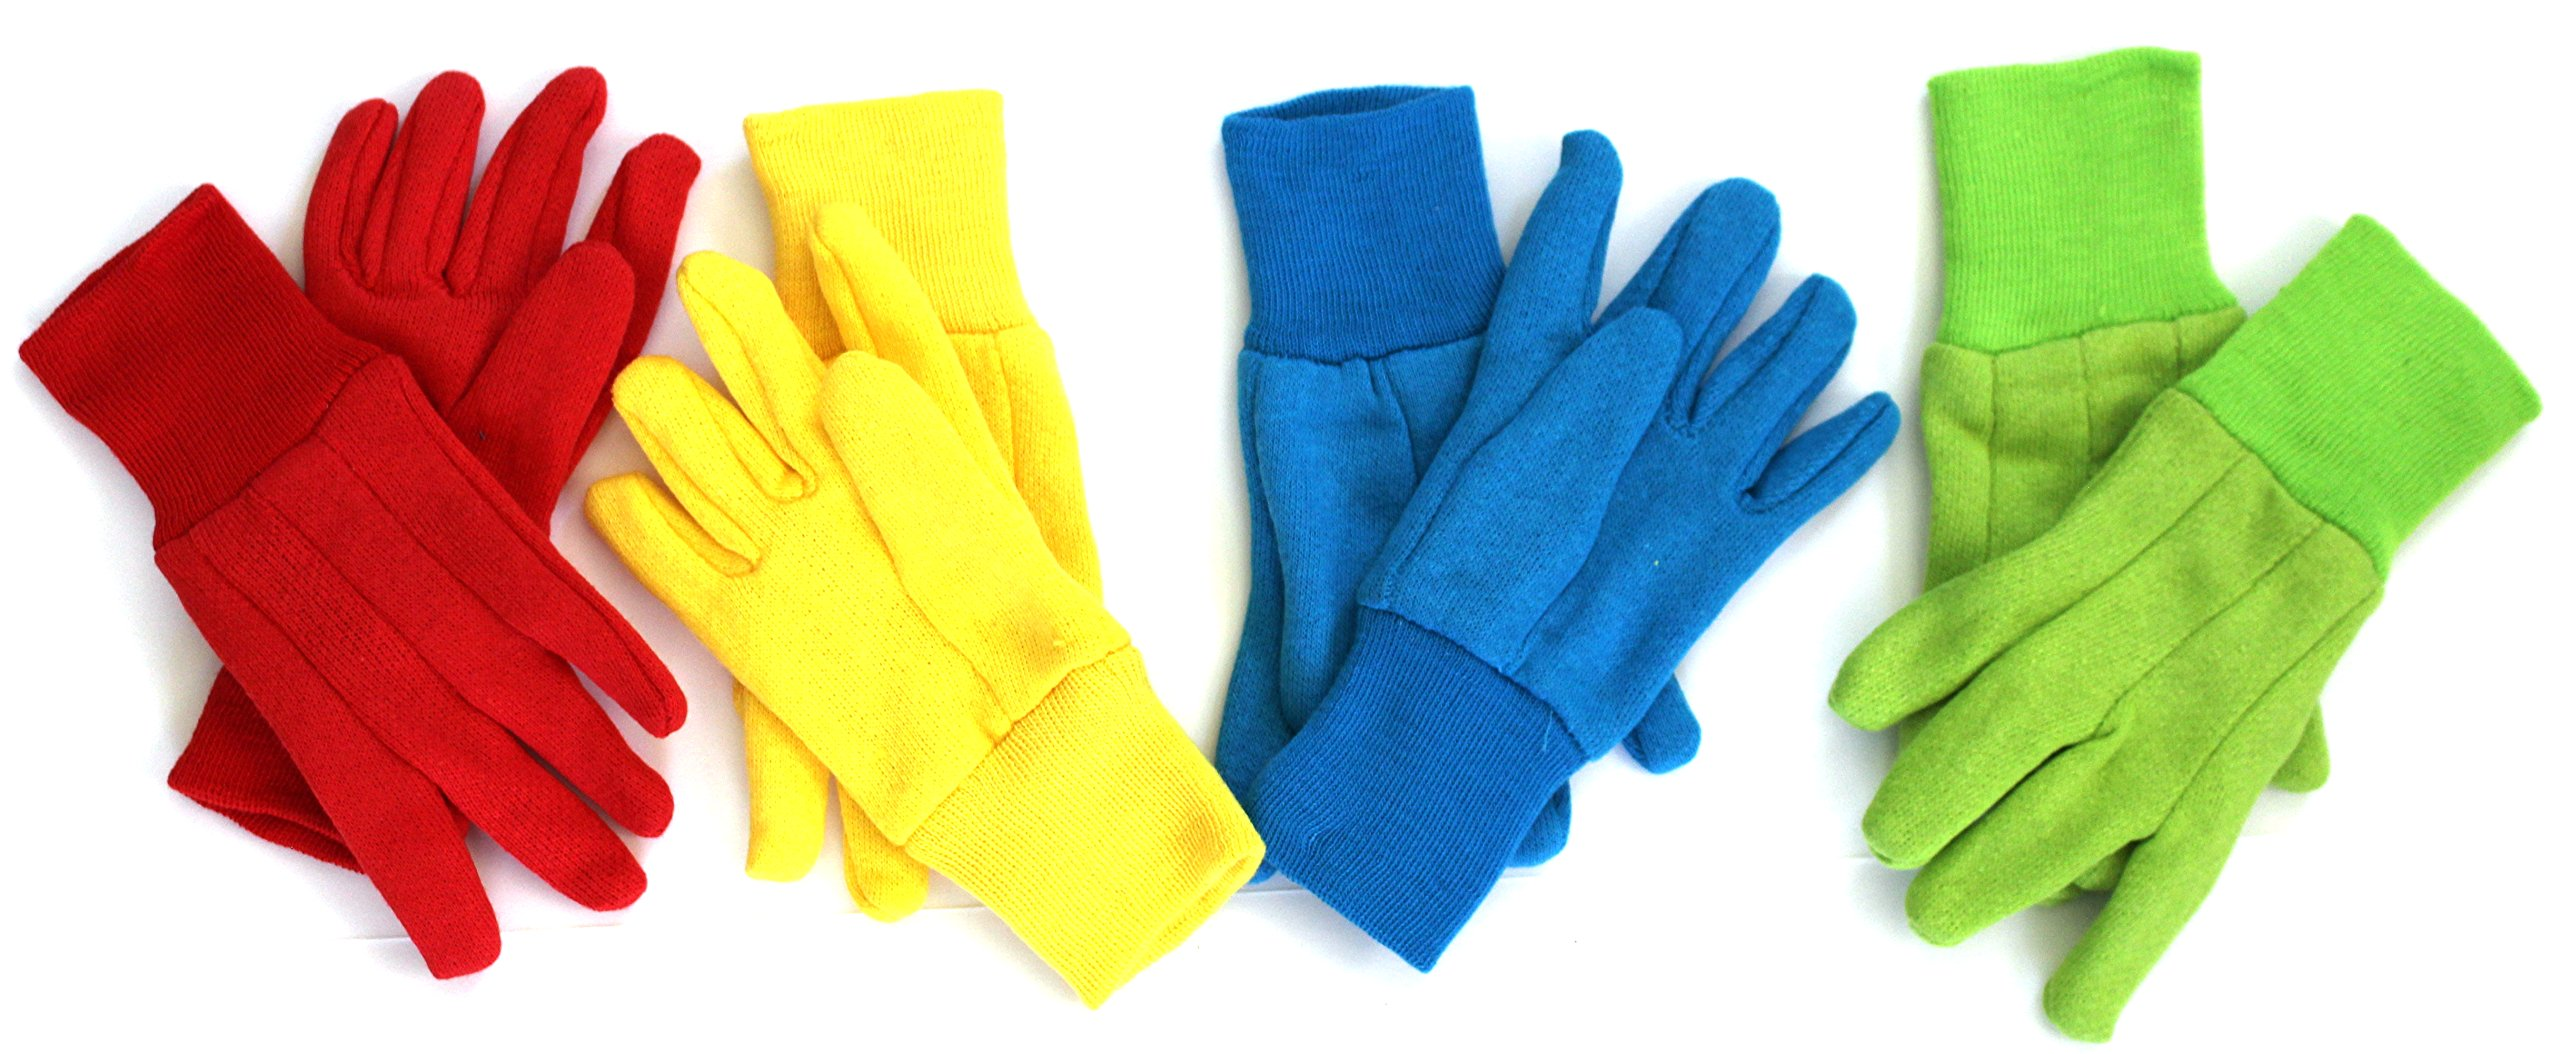 KIDS COTTON GARDENING GLOVES, (4-Pack) - Ages 3+ - FUN 'BRIGHT' COLORS - Pack will include all 4 Colors. a Different Color Everyday!